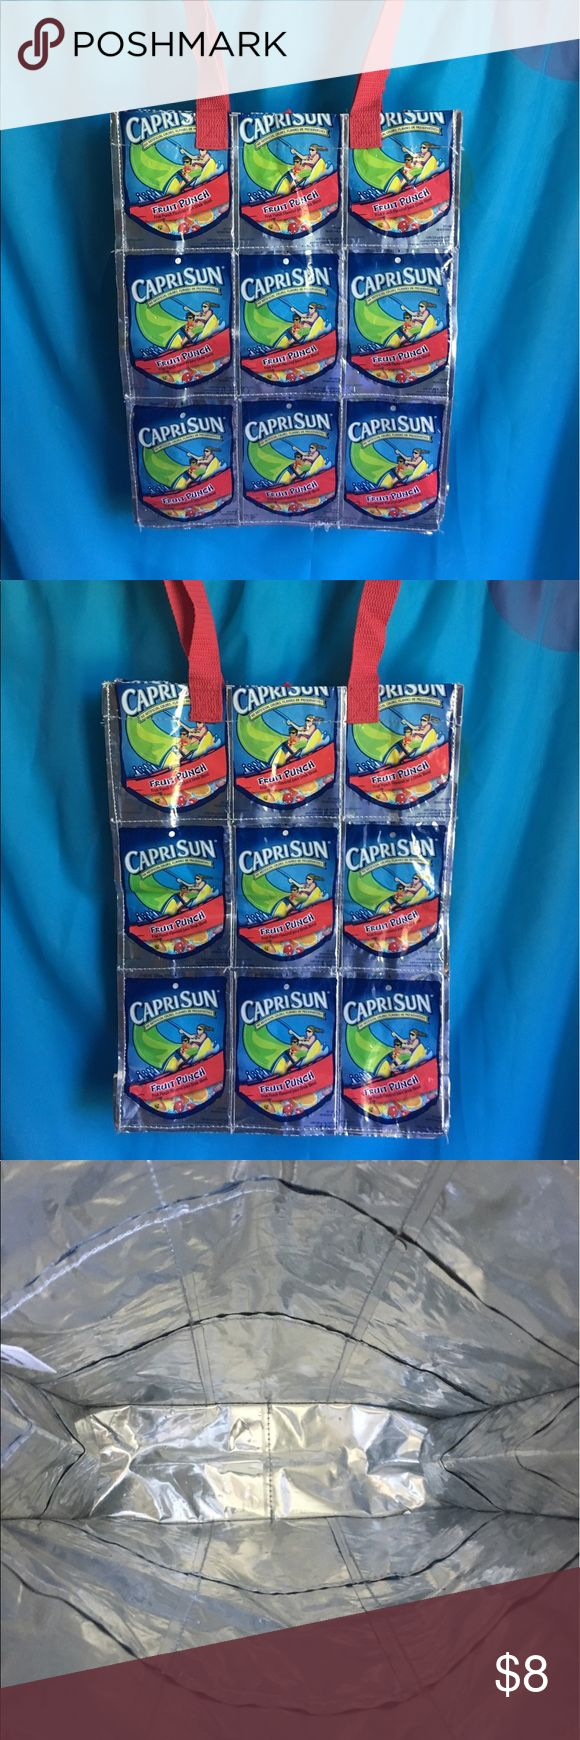 Capri Sun shoulder bag Capri Sun shoulder bag! Cute fun shoulder bag made out of Capri Sun pouches. In great condition. Bags Shoulder Bags